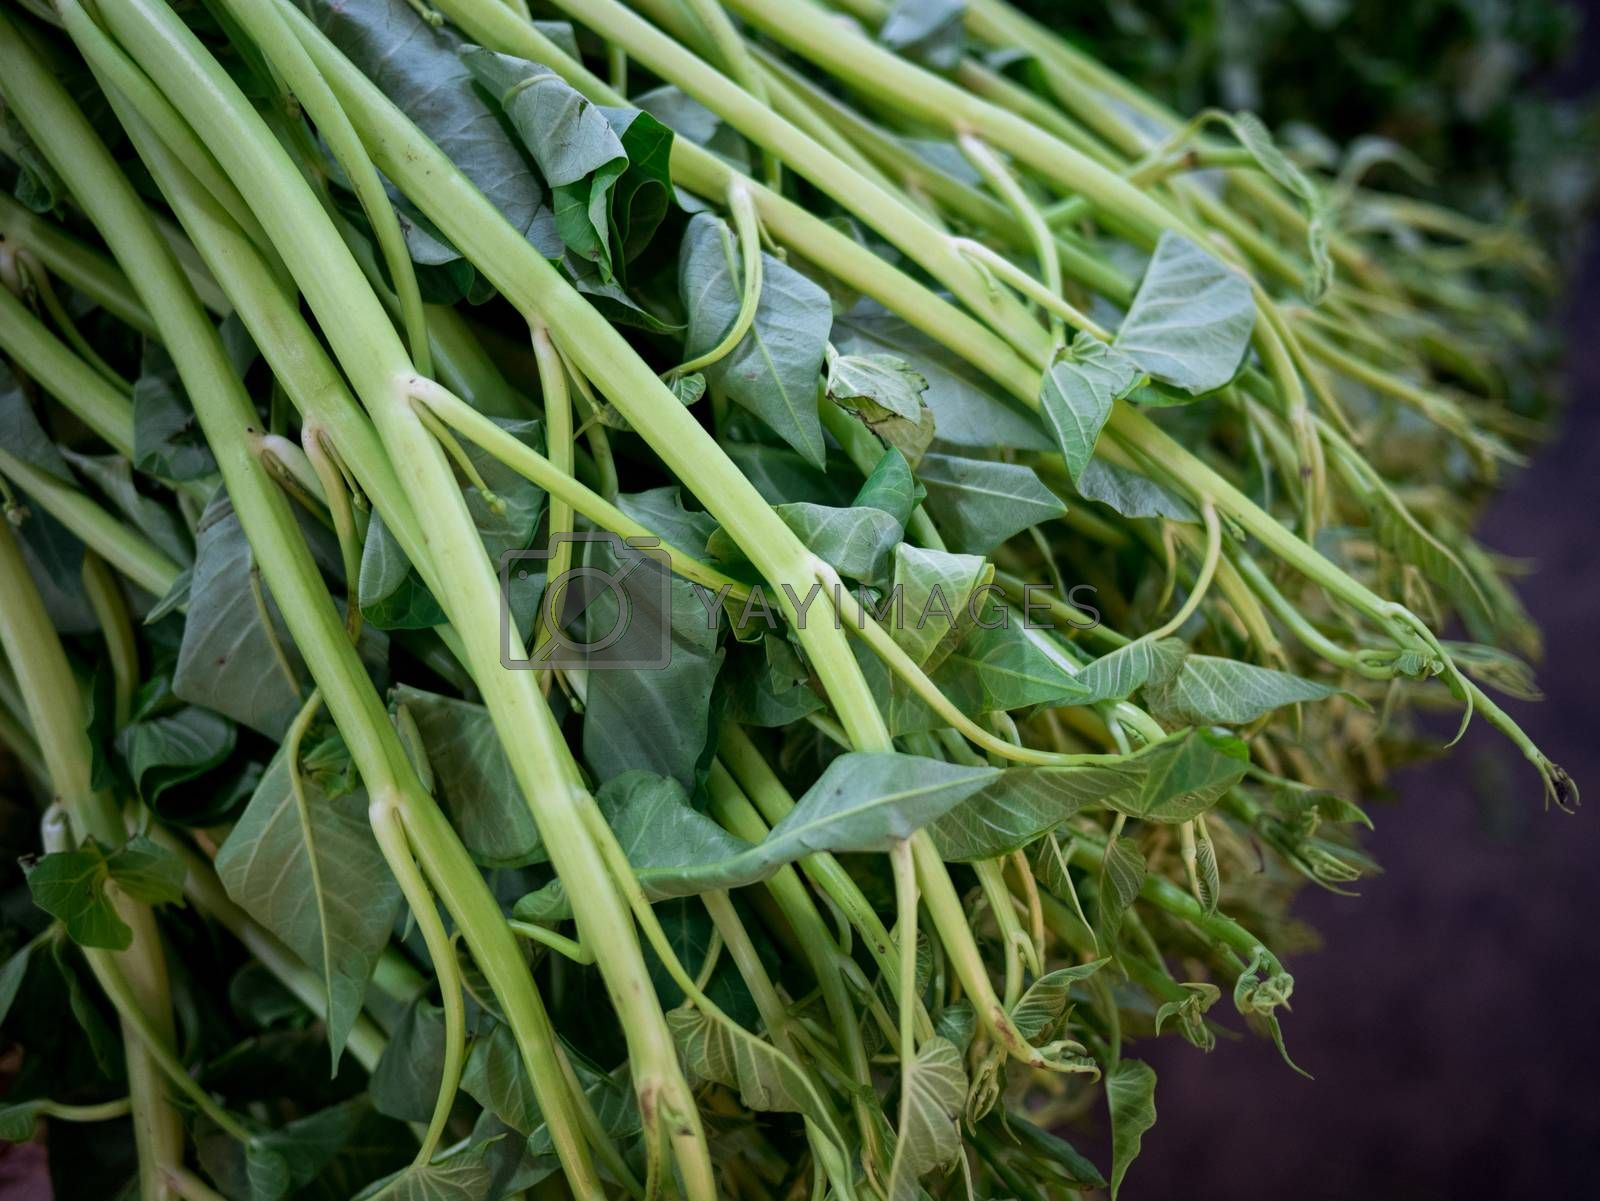 Royalty free image of heap of morning glory on fresh market by antpkr